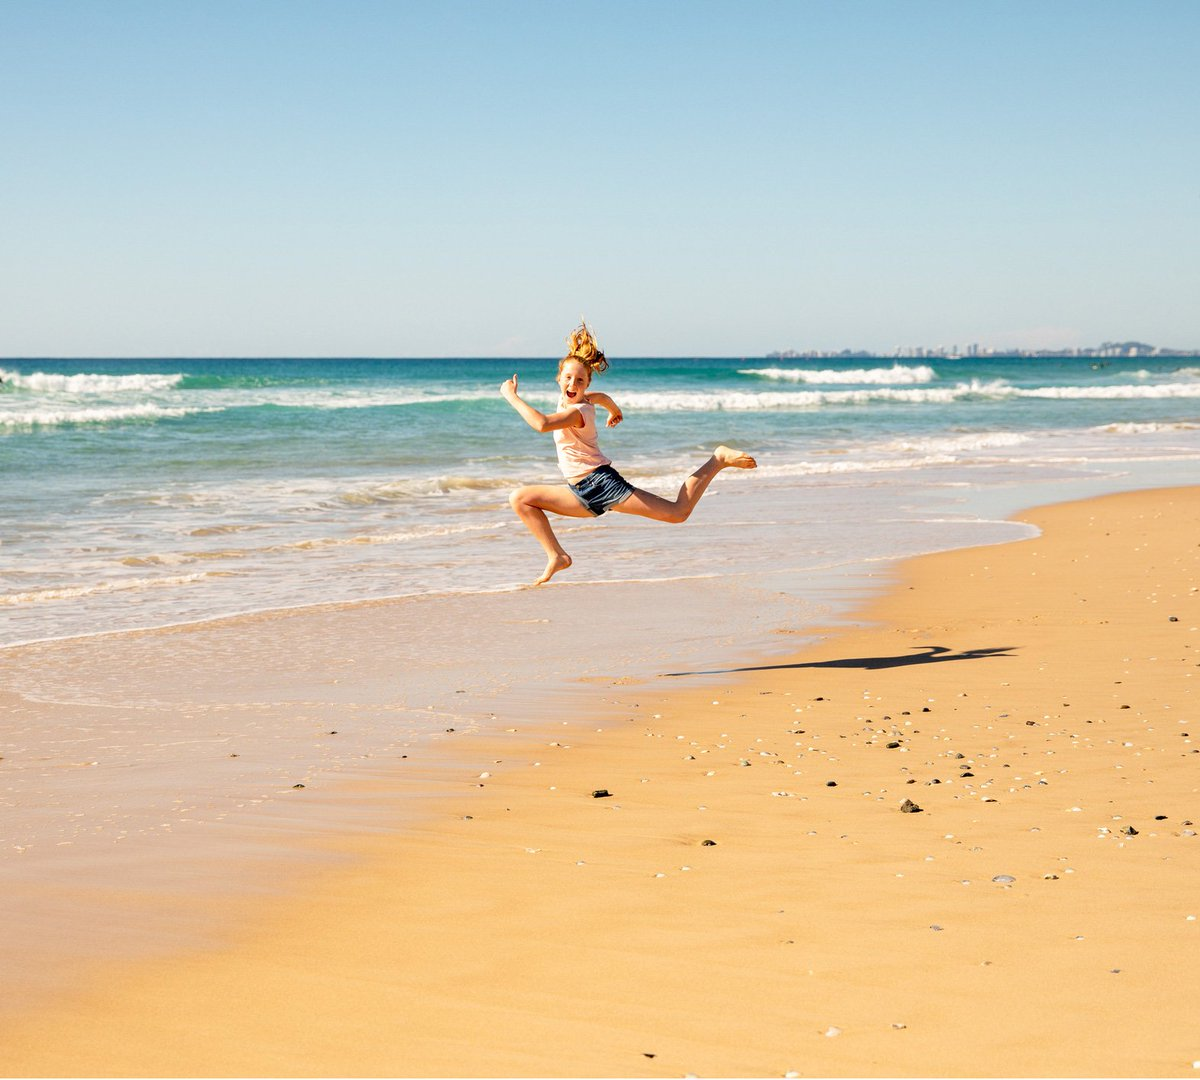 When are you off to the Gold Coast next? If you and the fam are GC-bound, make sure you read our 9 top picks for families first - https://t.co/mnlTYOqTyk #goldcoast #familyholiday #Australia #goldcoastgoldenfinds https://t.co/6F5Ky80z50